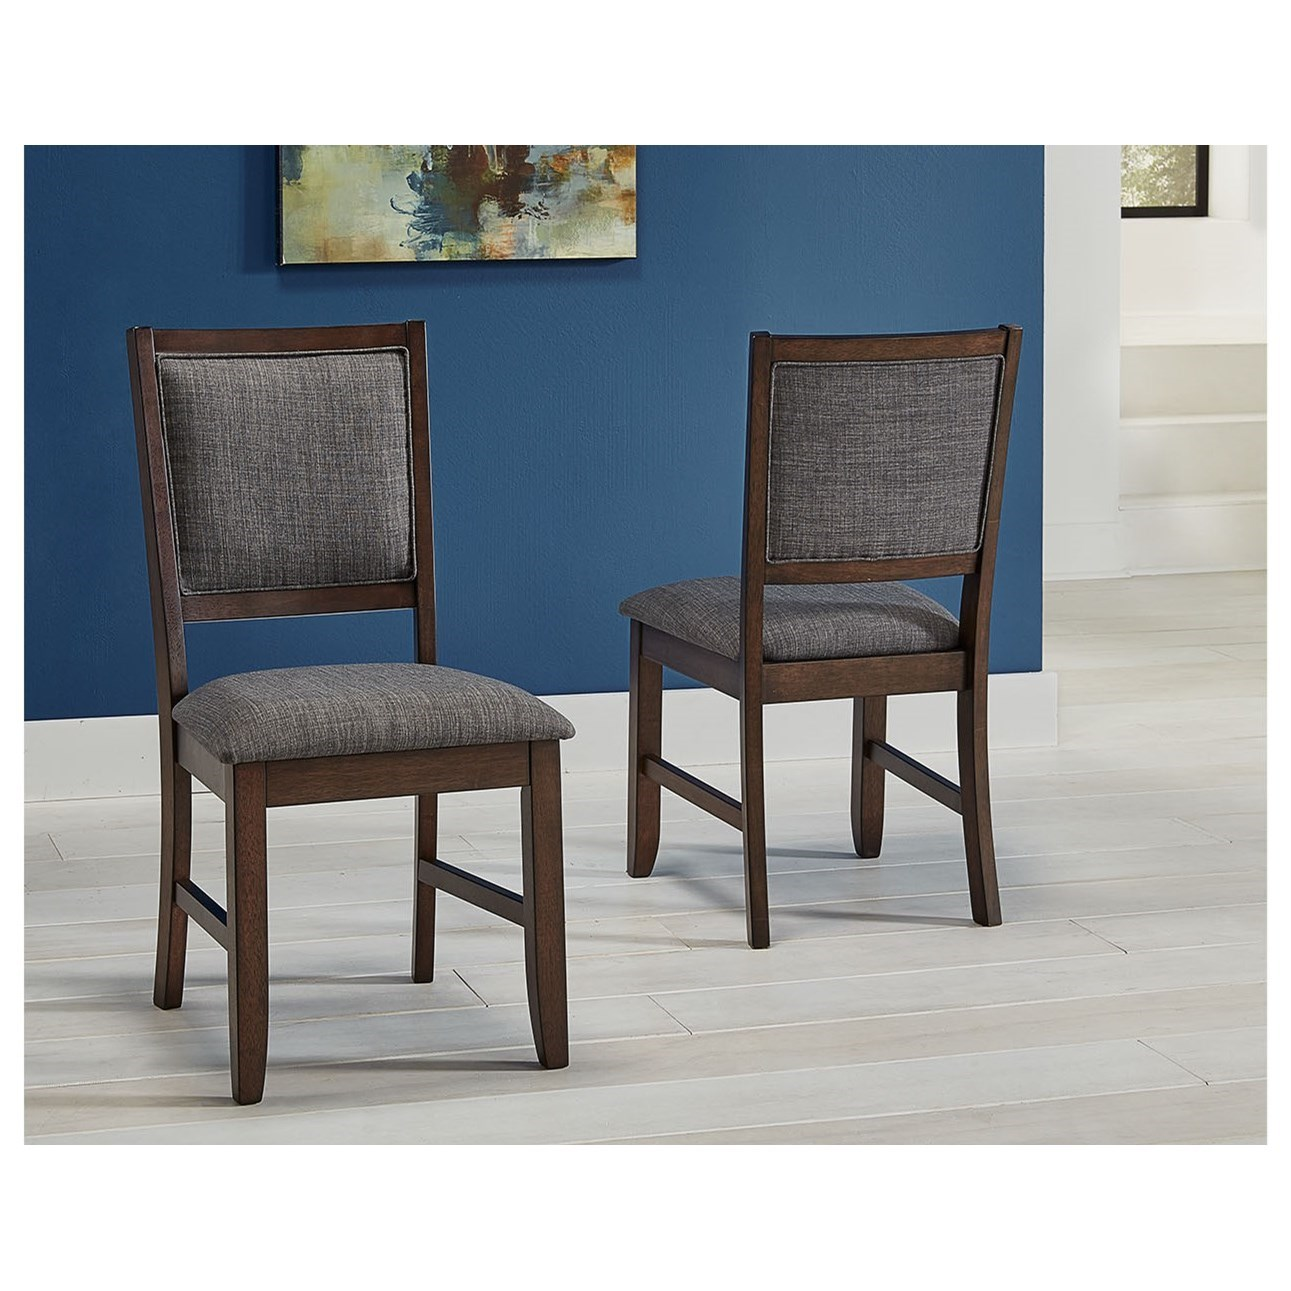 Chesney Upholstered Side Chair  by A-A at Walker's Furniture